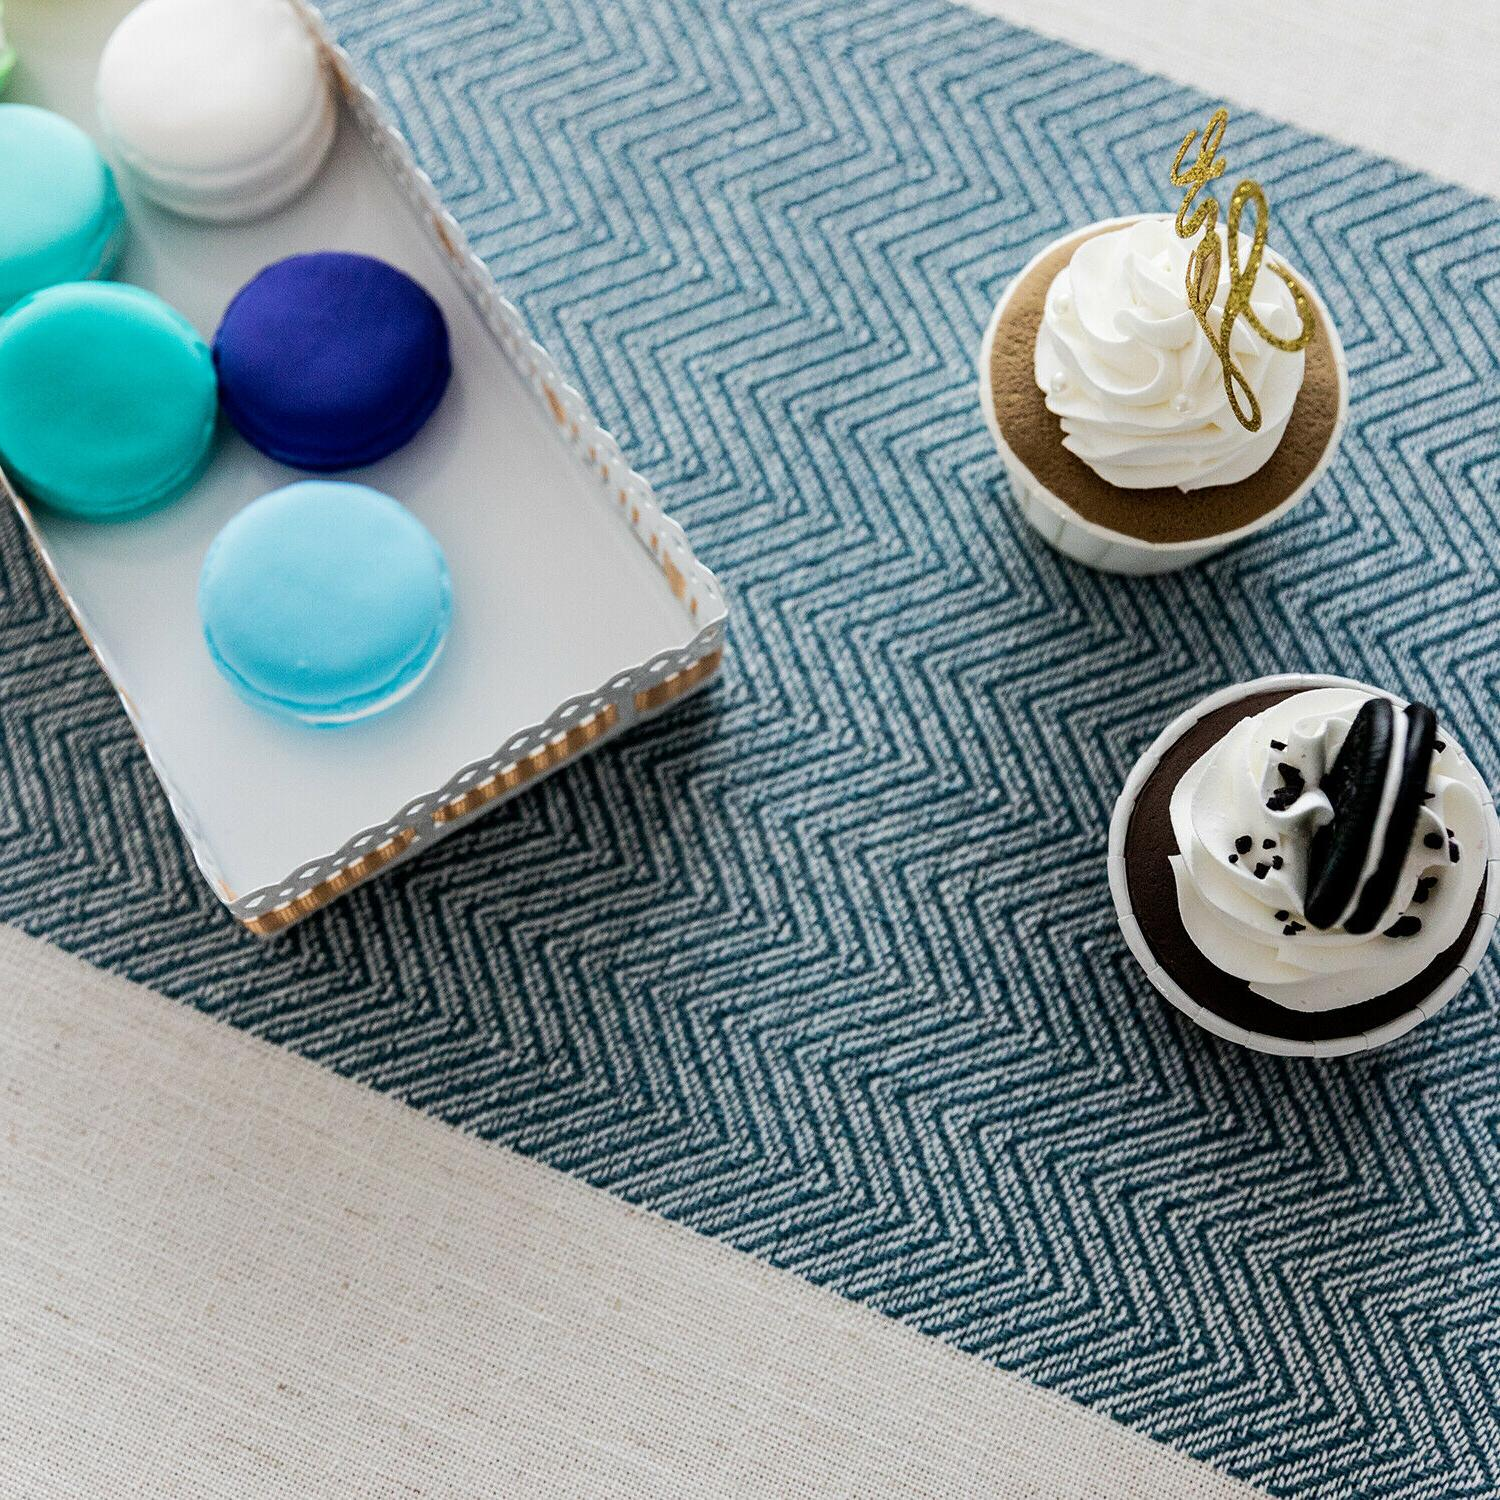 Linen tablecloth,waterproof for Kitchen Decoration